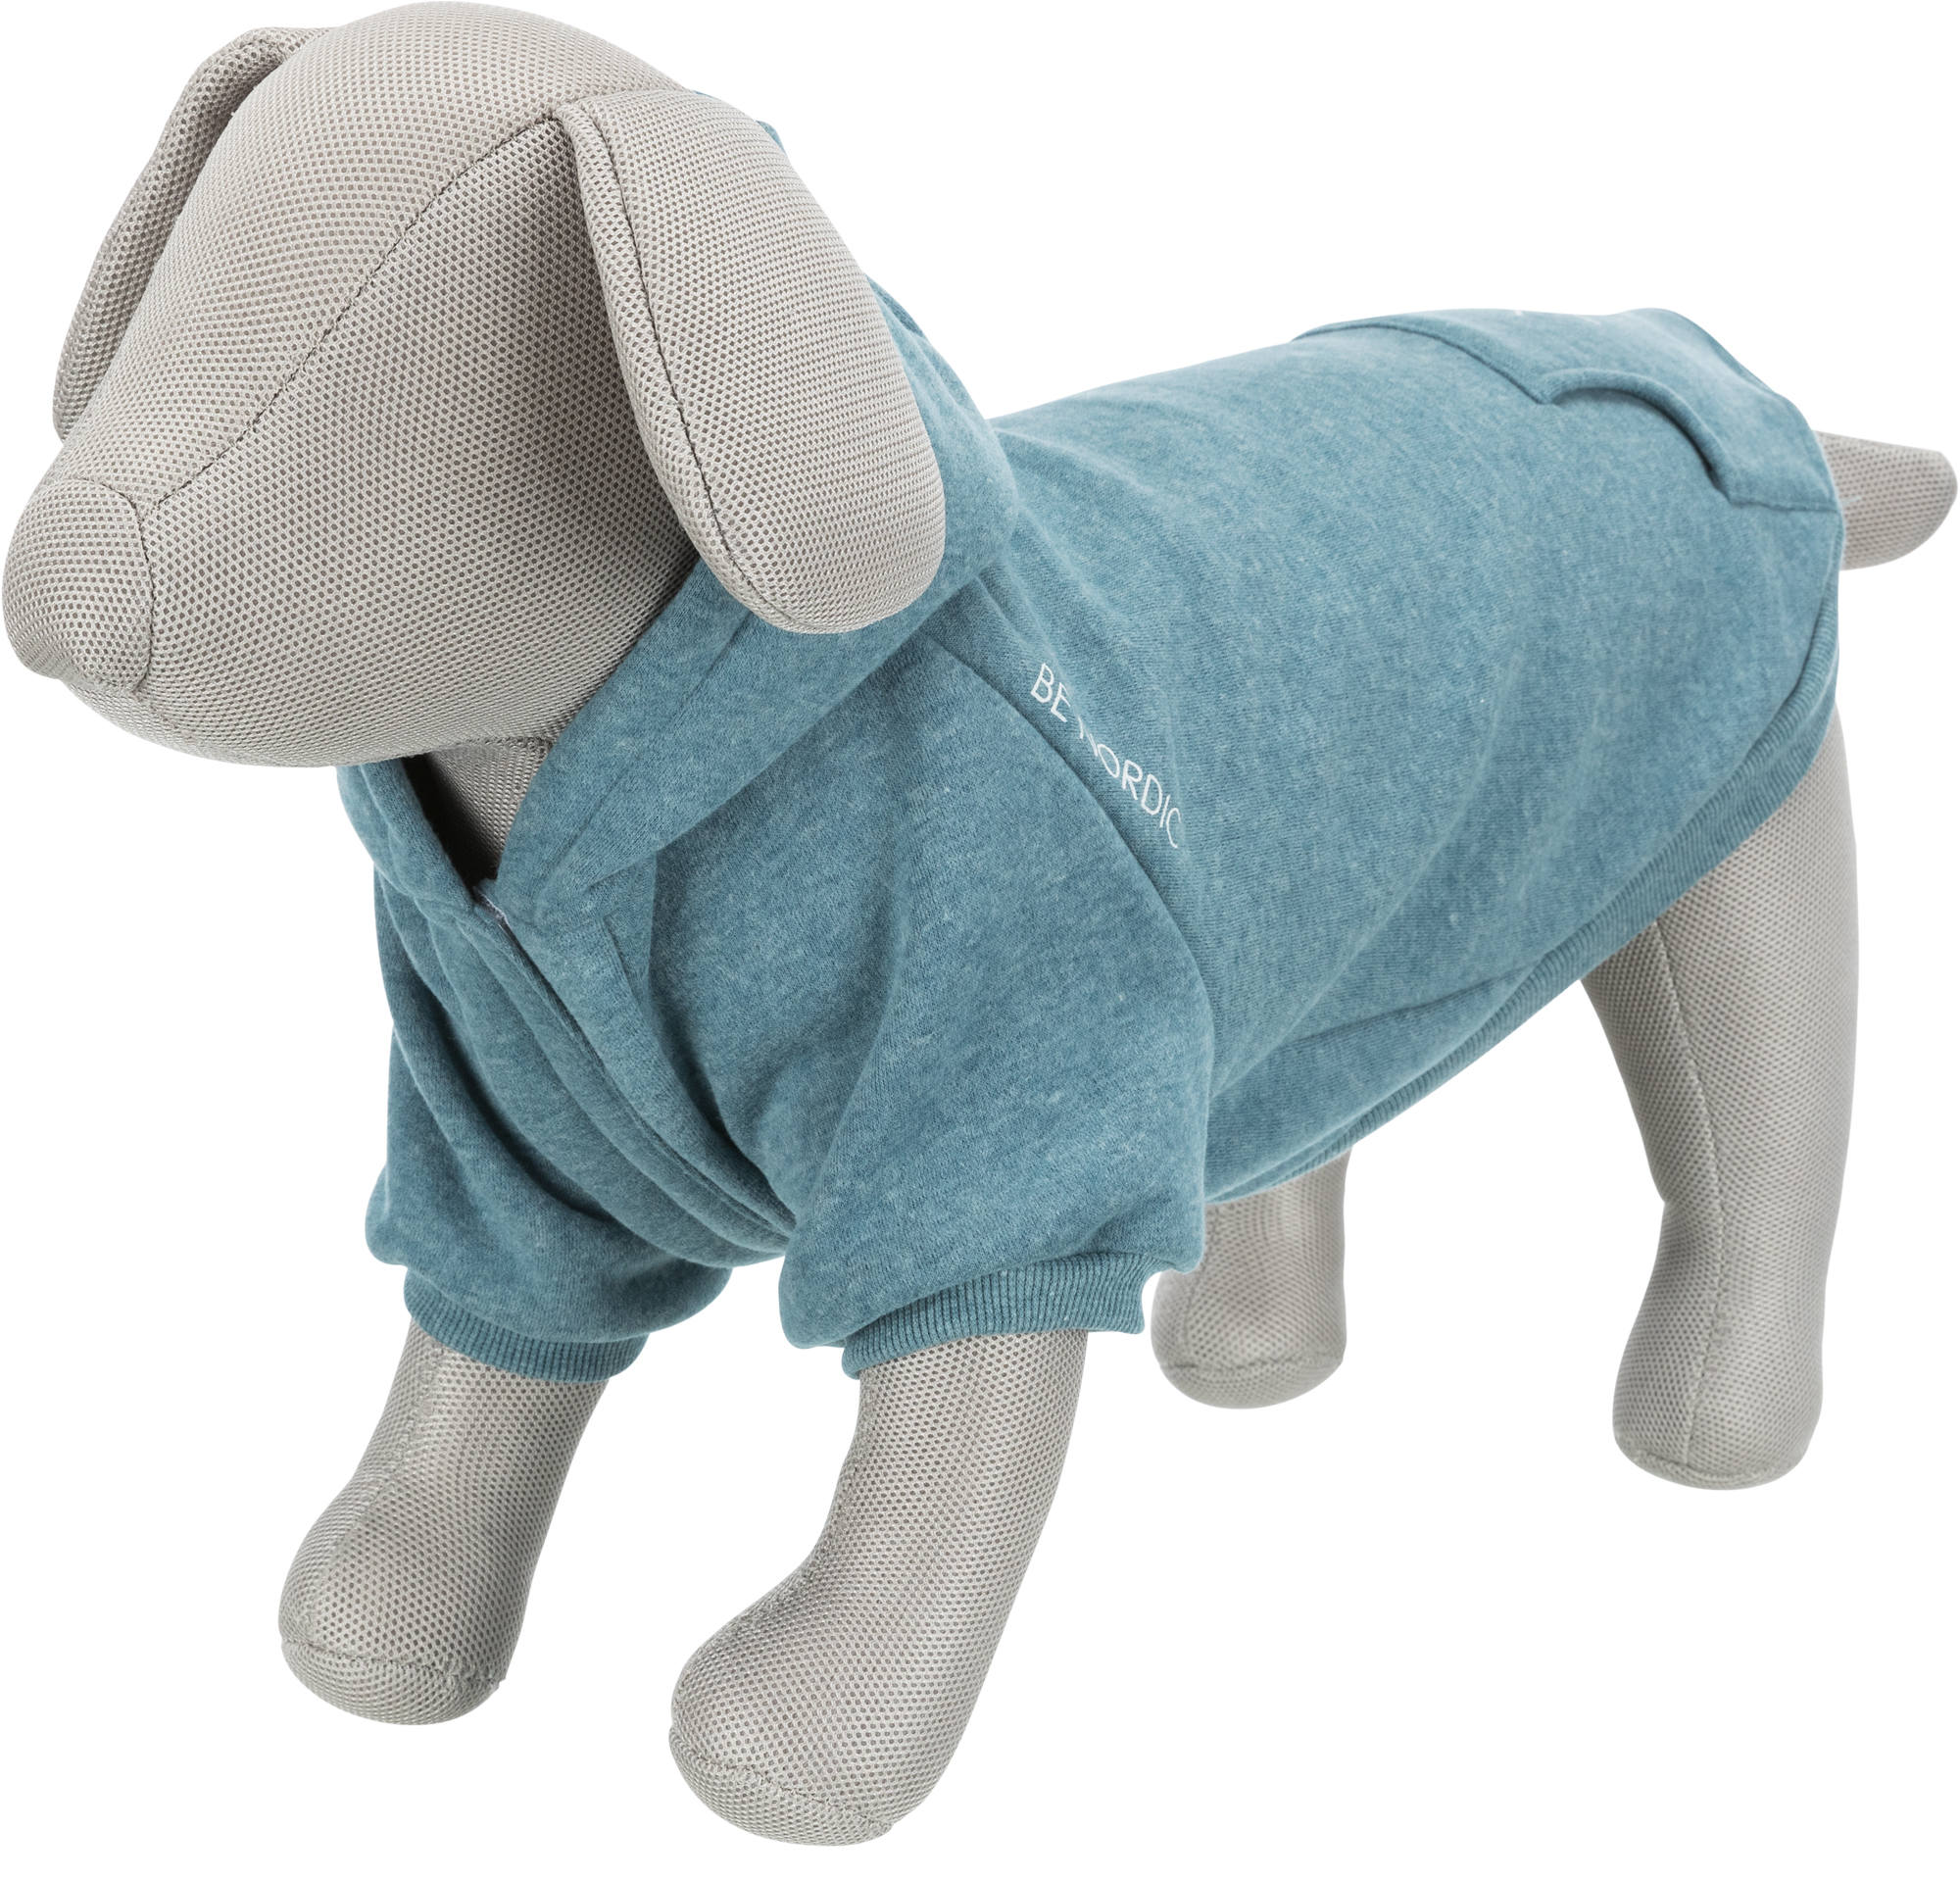 TRIXIE BE NORDIC Hoodie Flensburg TRIXIE BE NORDIC Hoodie Flensburg, M: 50 cm, petrol